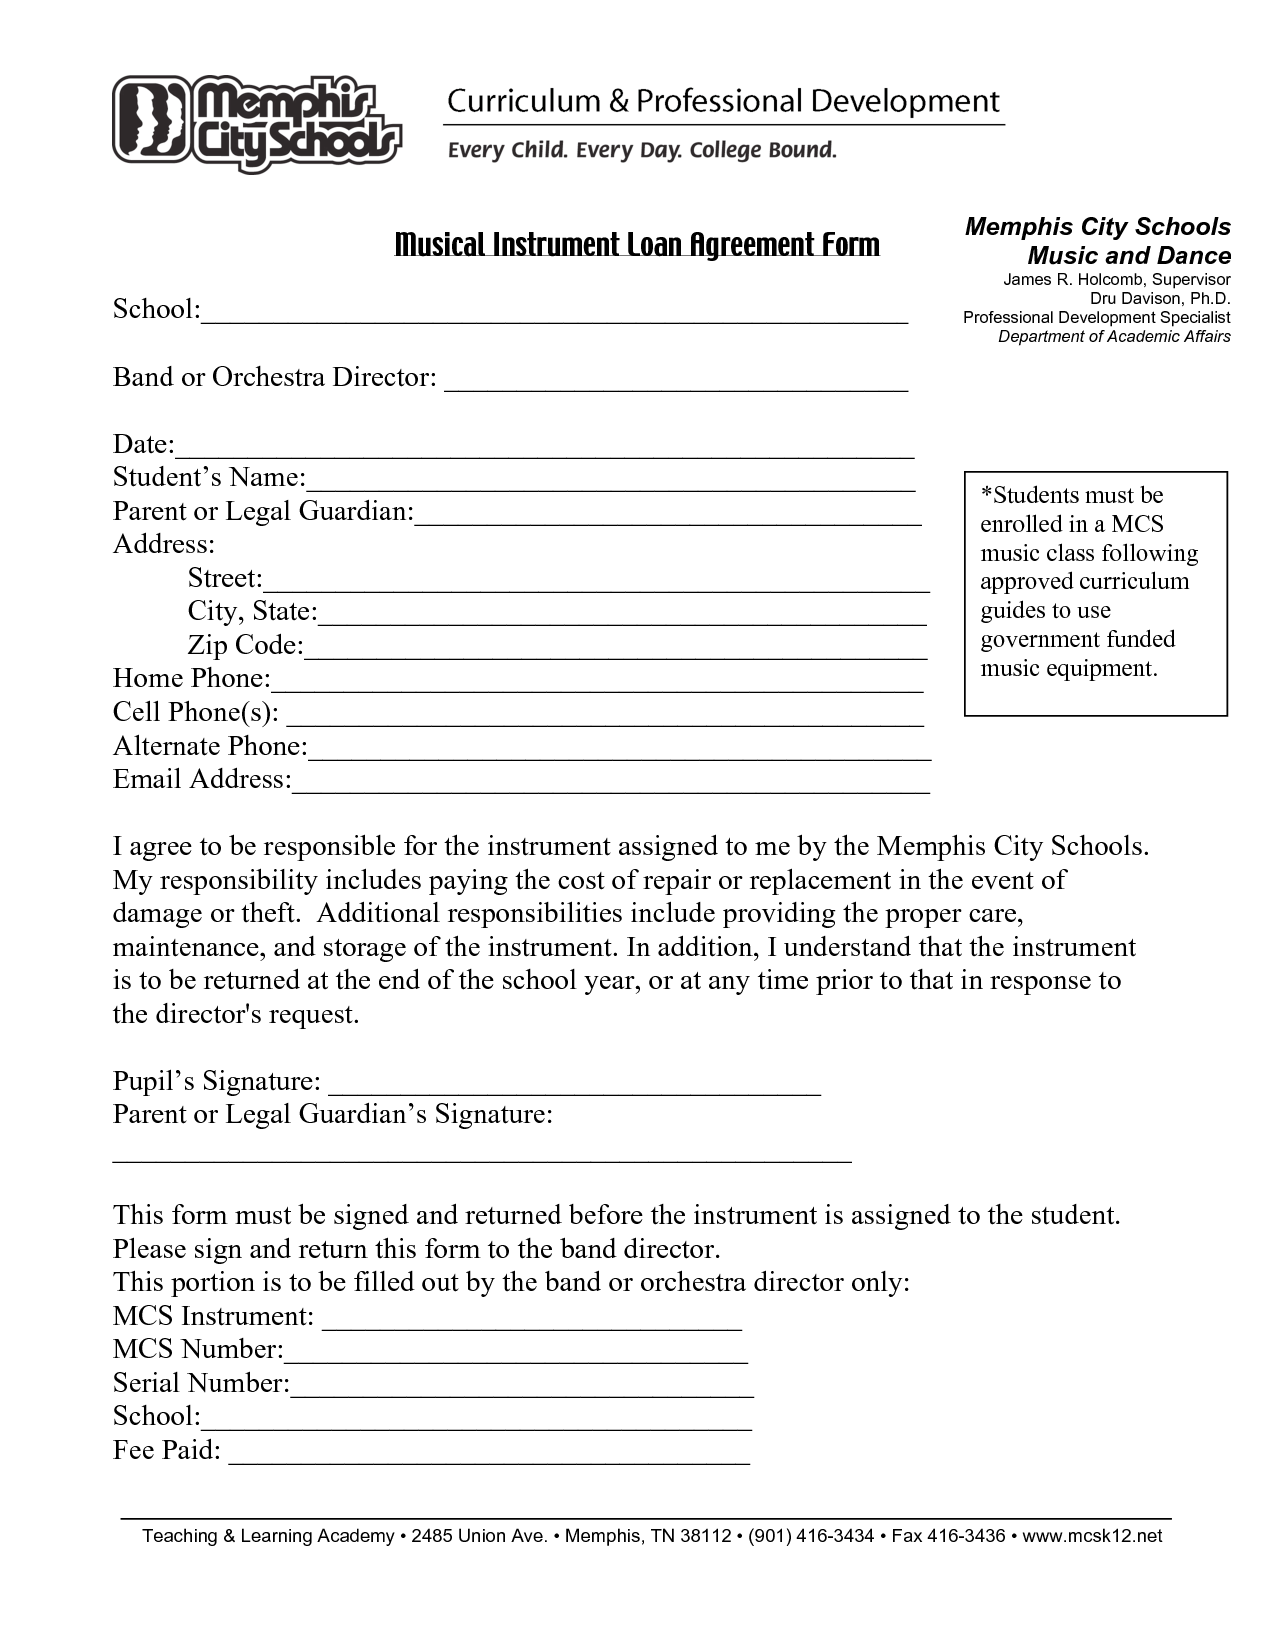 Printable Sample Loan Agreement Form Form | Attorney Legal Forms | Legal forms, Resume template ...